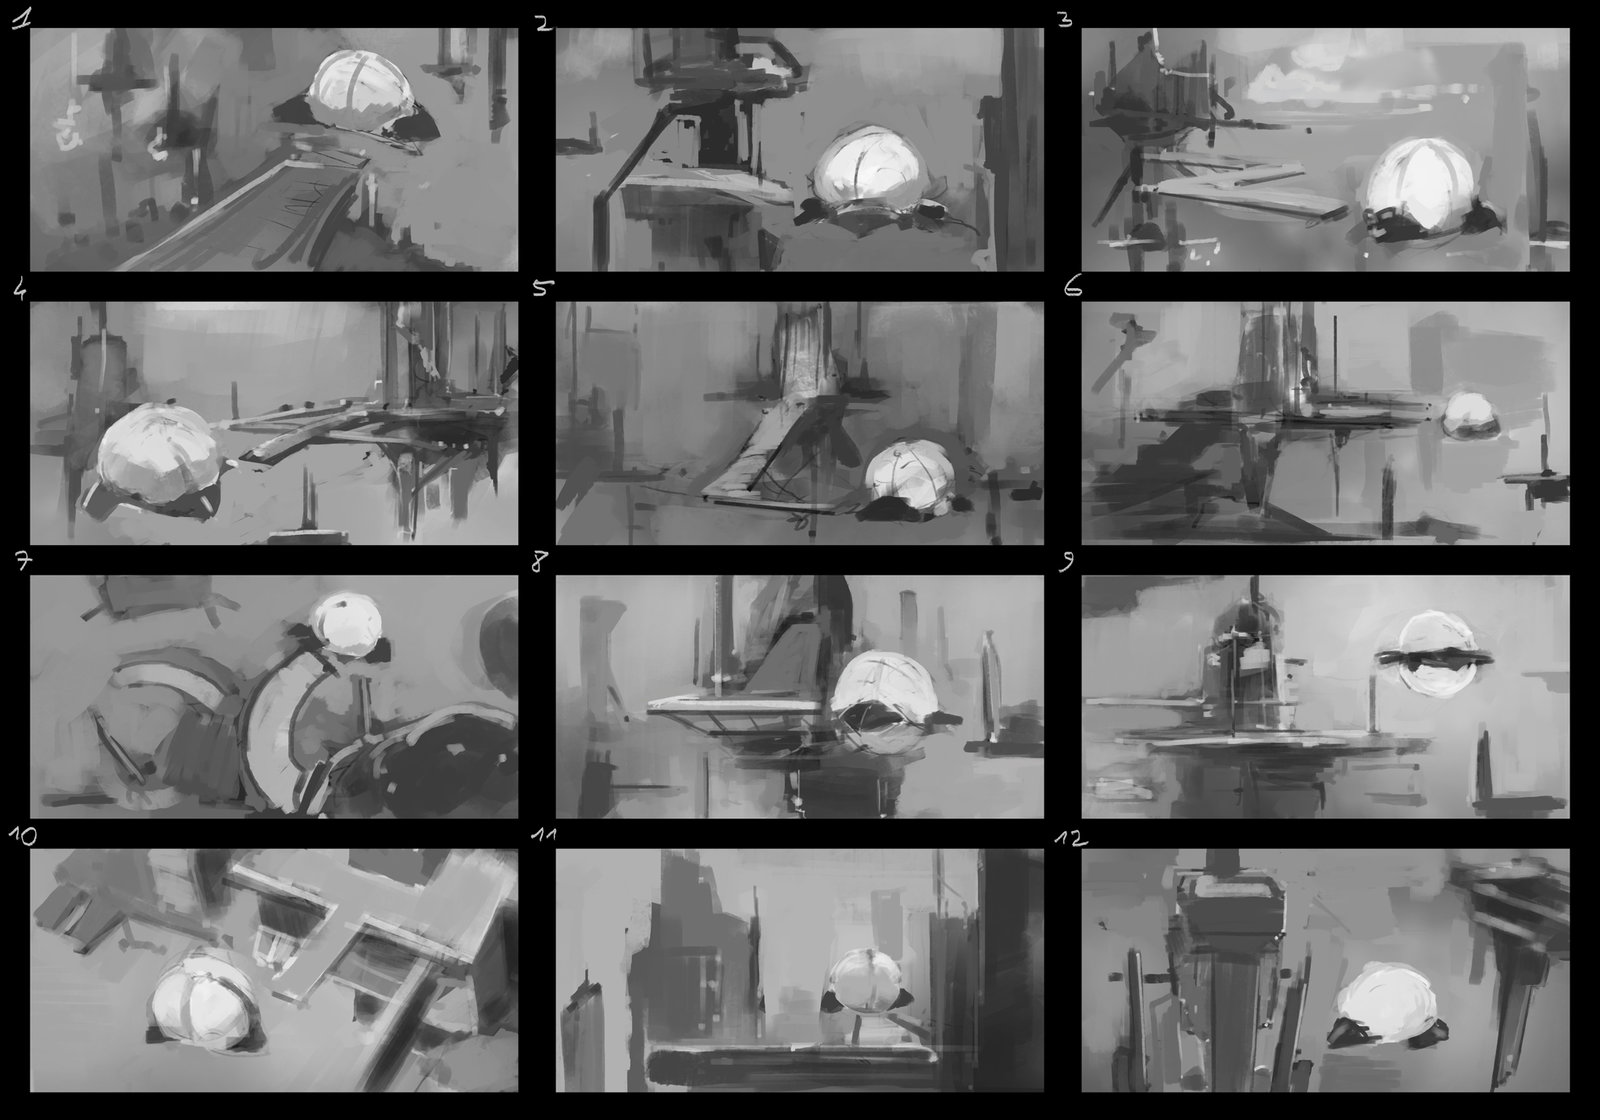 Thumbnails, first options, thought about a sci fi scene.